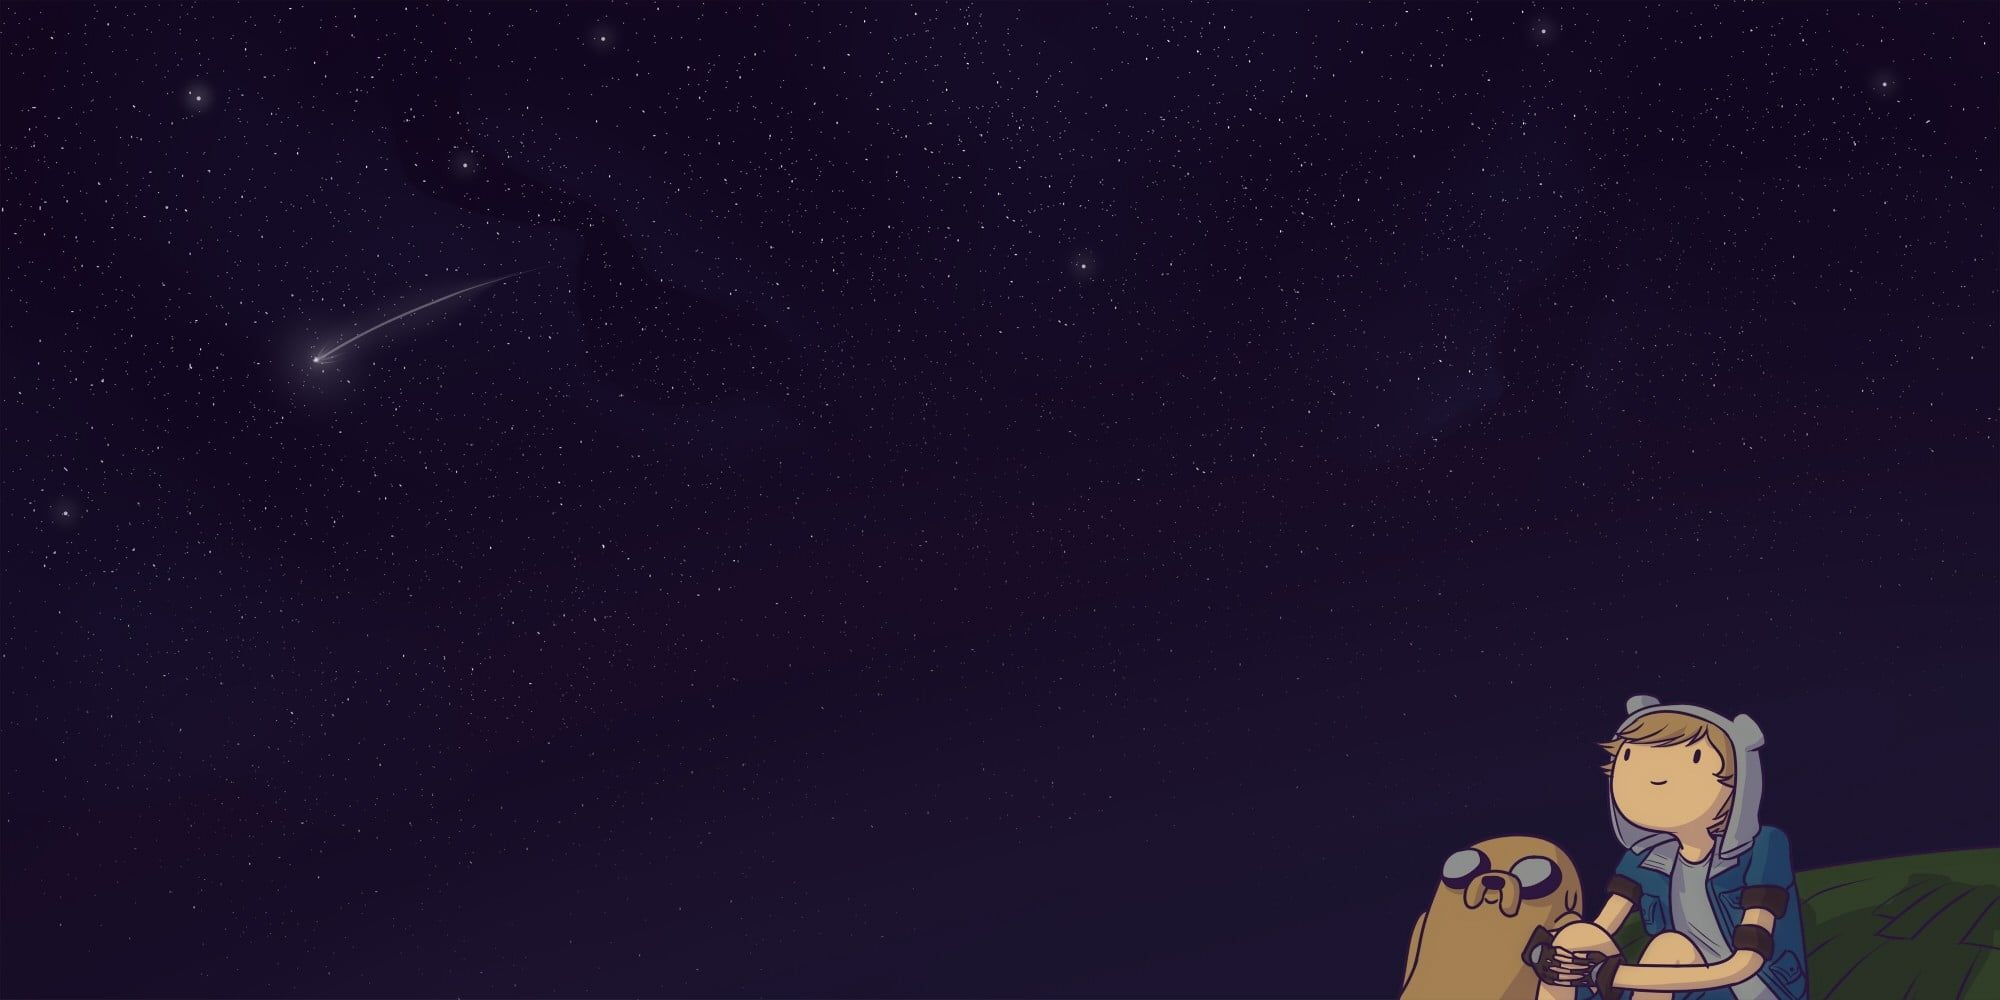 Adventure Time Finn The Human Jake The Dog 1080p Wallpaper Hdwallpaper Desktop Adventure Time Wallpaper Jake Adventure Time Adventure Time